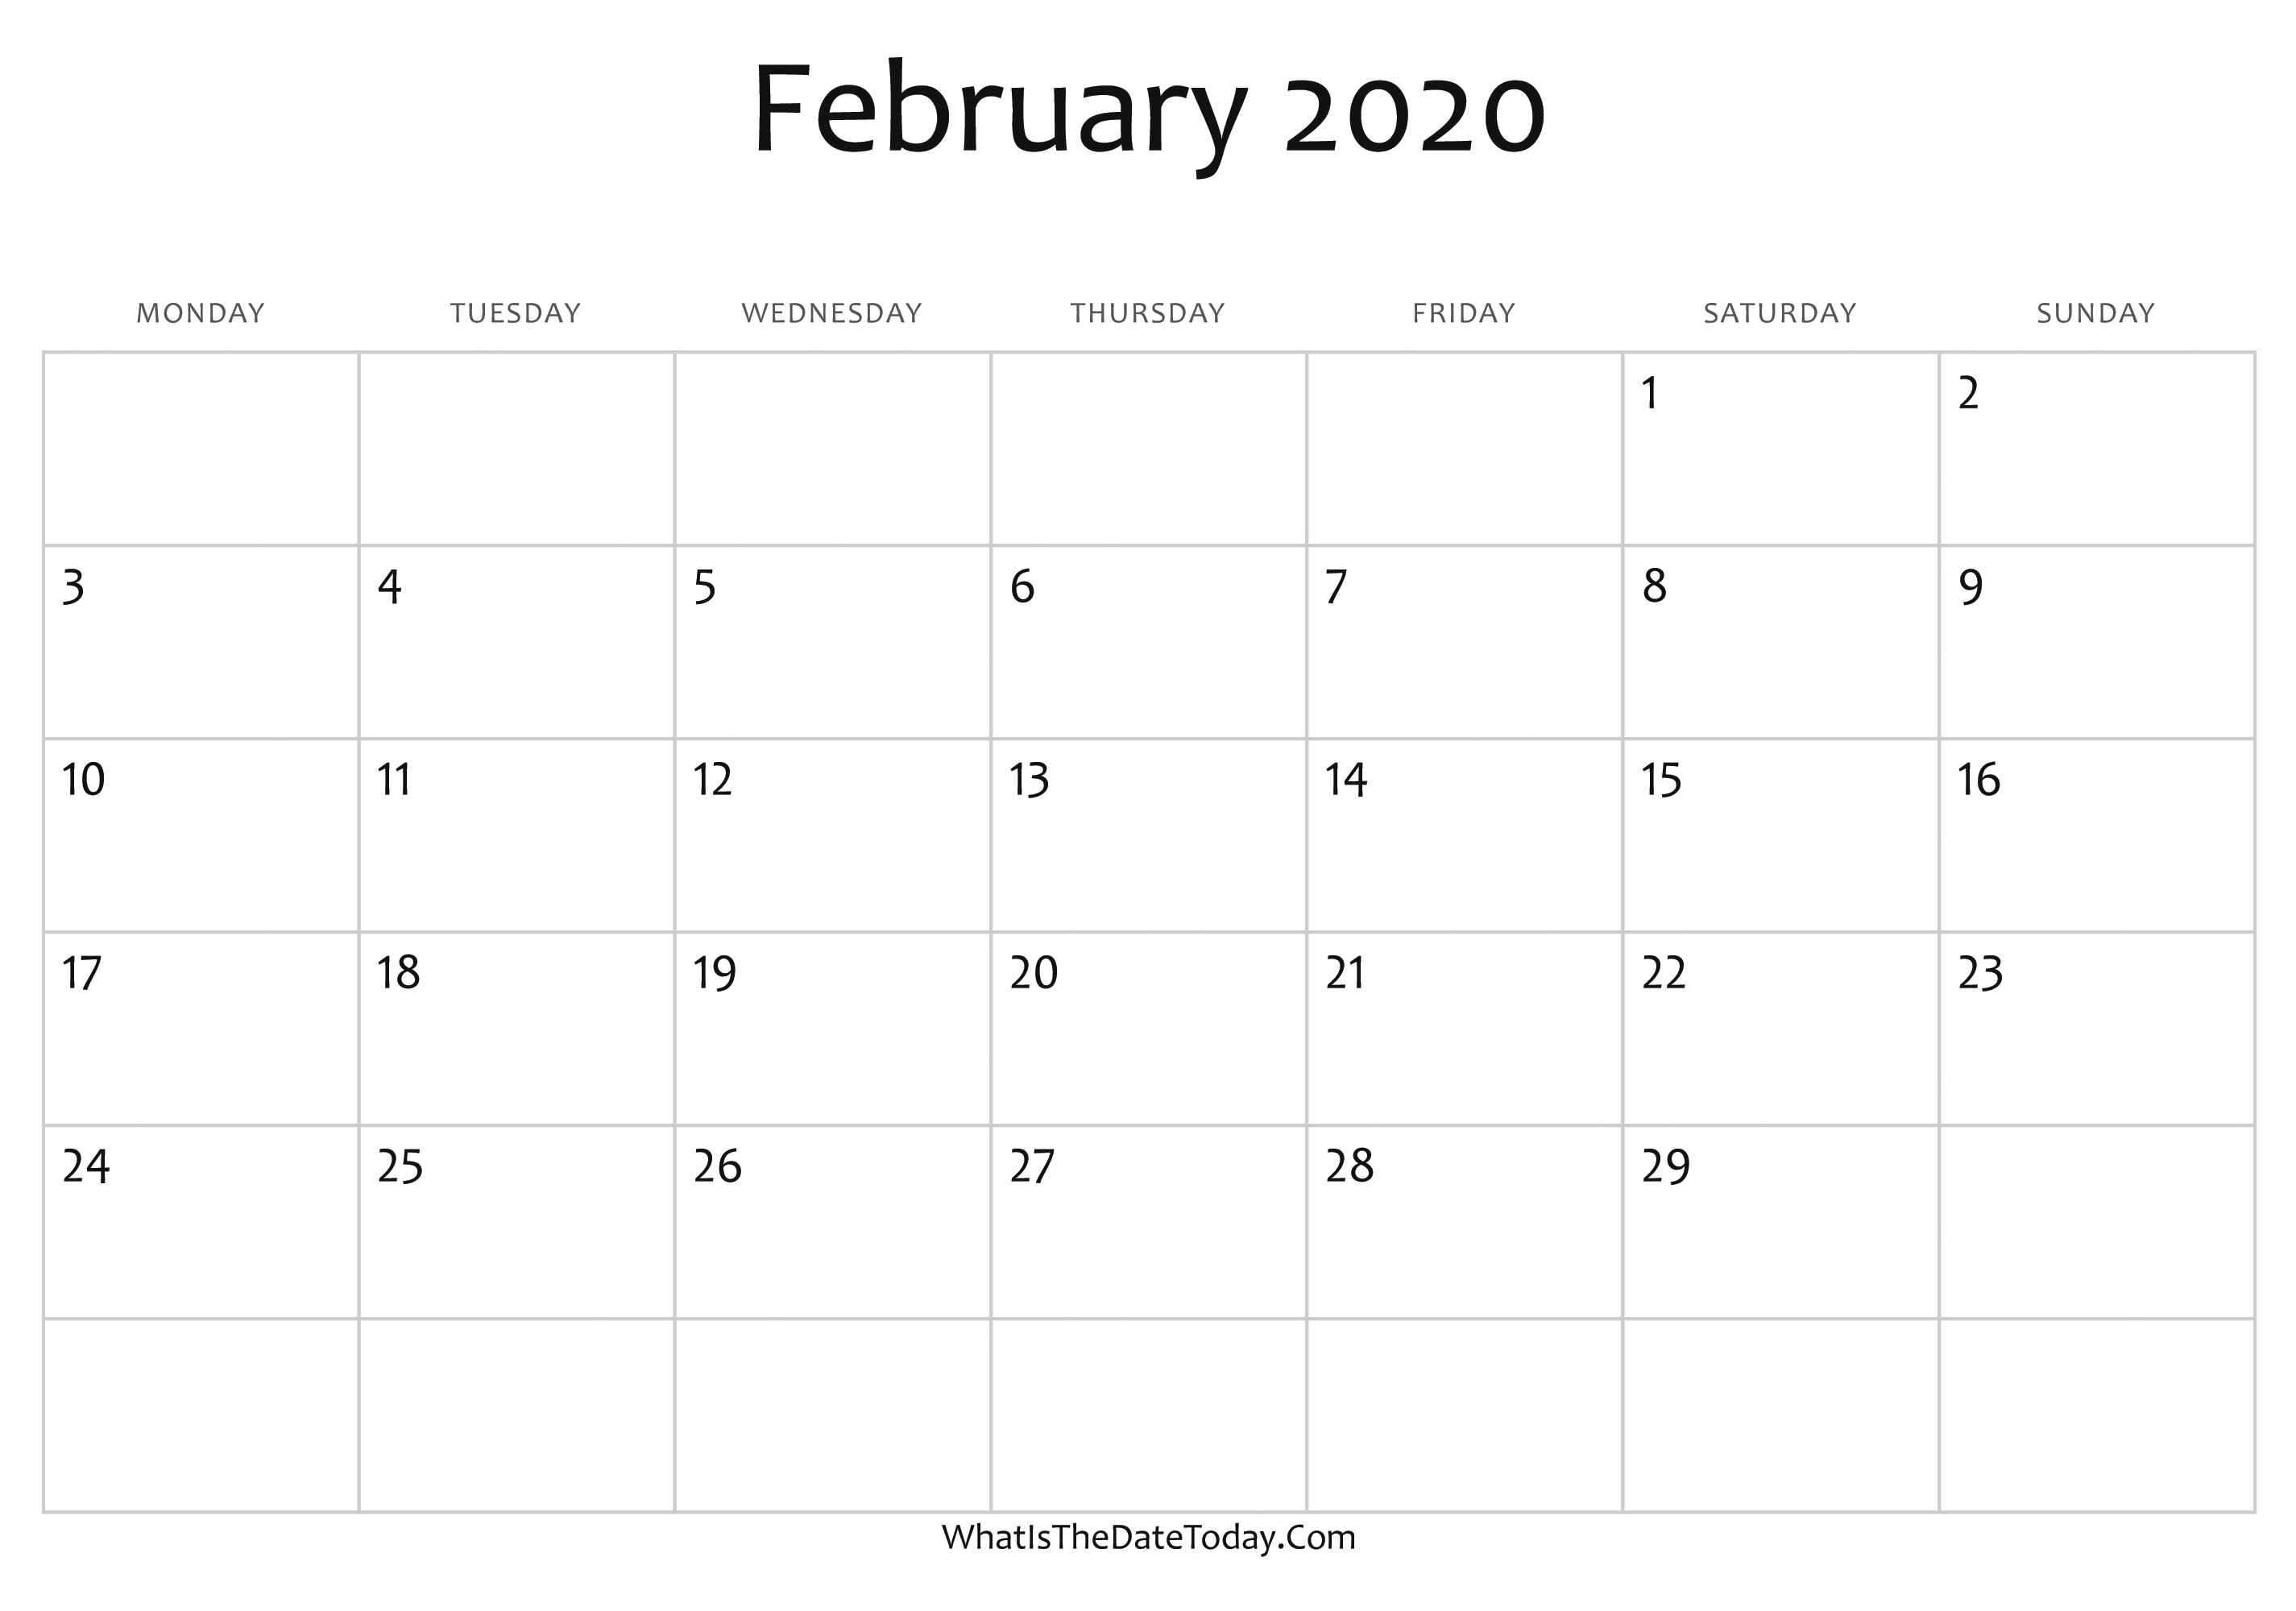 Editable 2020 February Calendar Blank February Calendar 2020 Editable | Whatisthedatetoday.Com